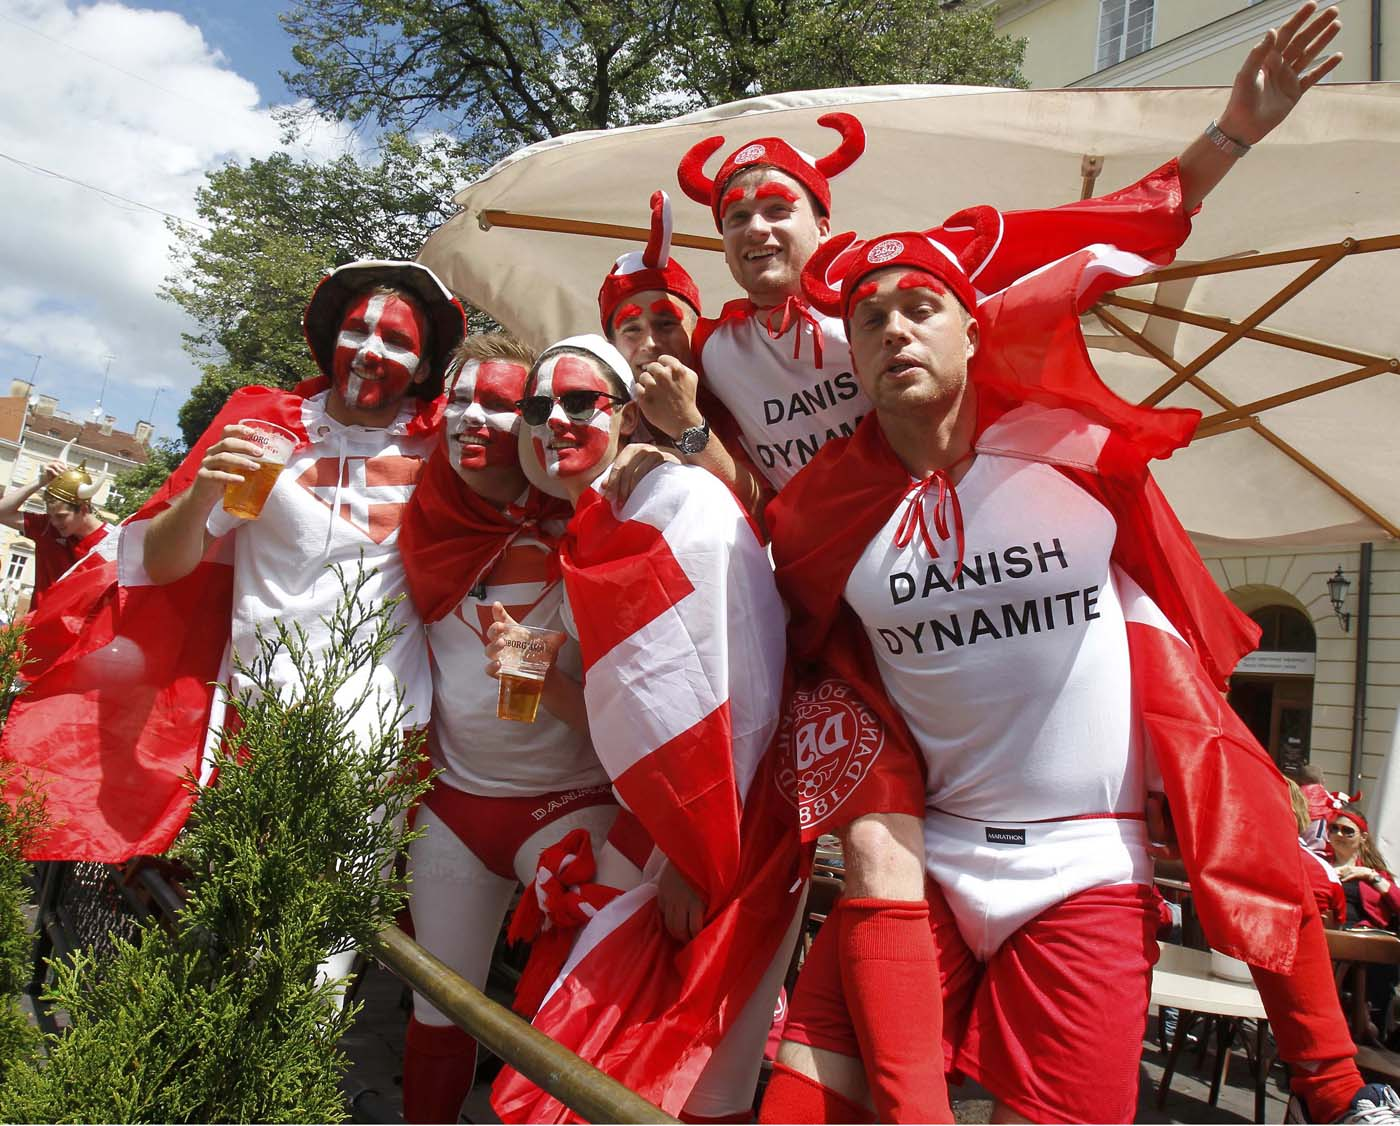 Denmark soccer fans drink beer and sing in Lviv June 13, 2012. Denmark will play match of the Euro 2012 soccer championships against Portugal in Lviv. (Gleb Garanich/Reuters)